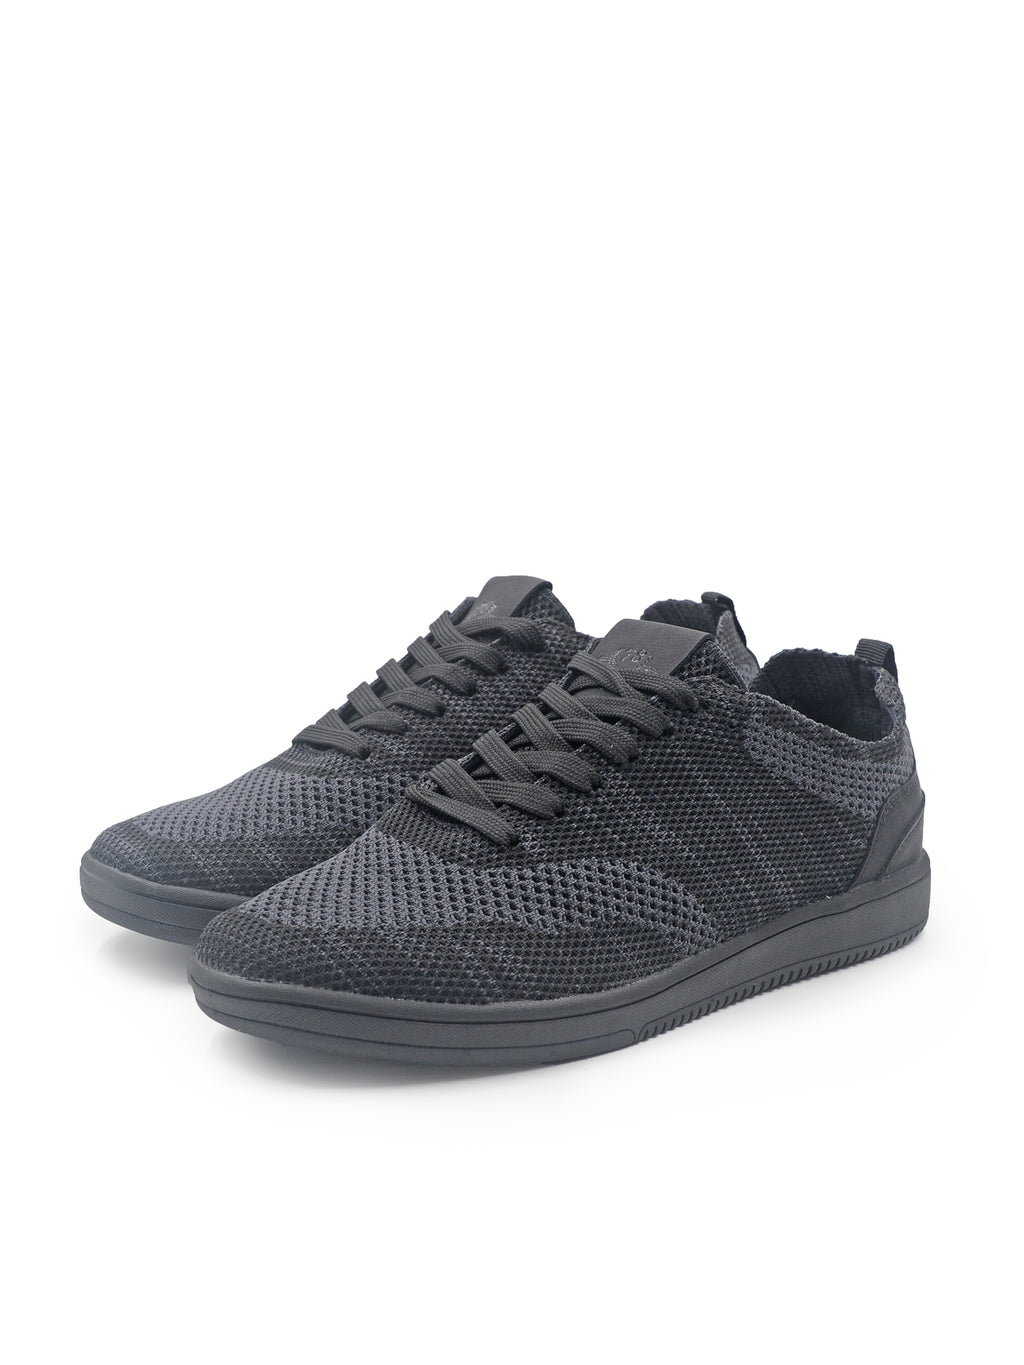 Larrie Black Light Knitted Sneakers